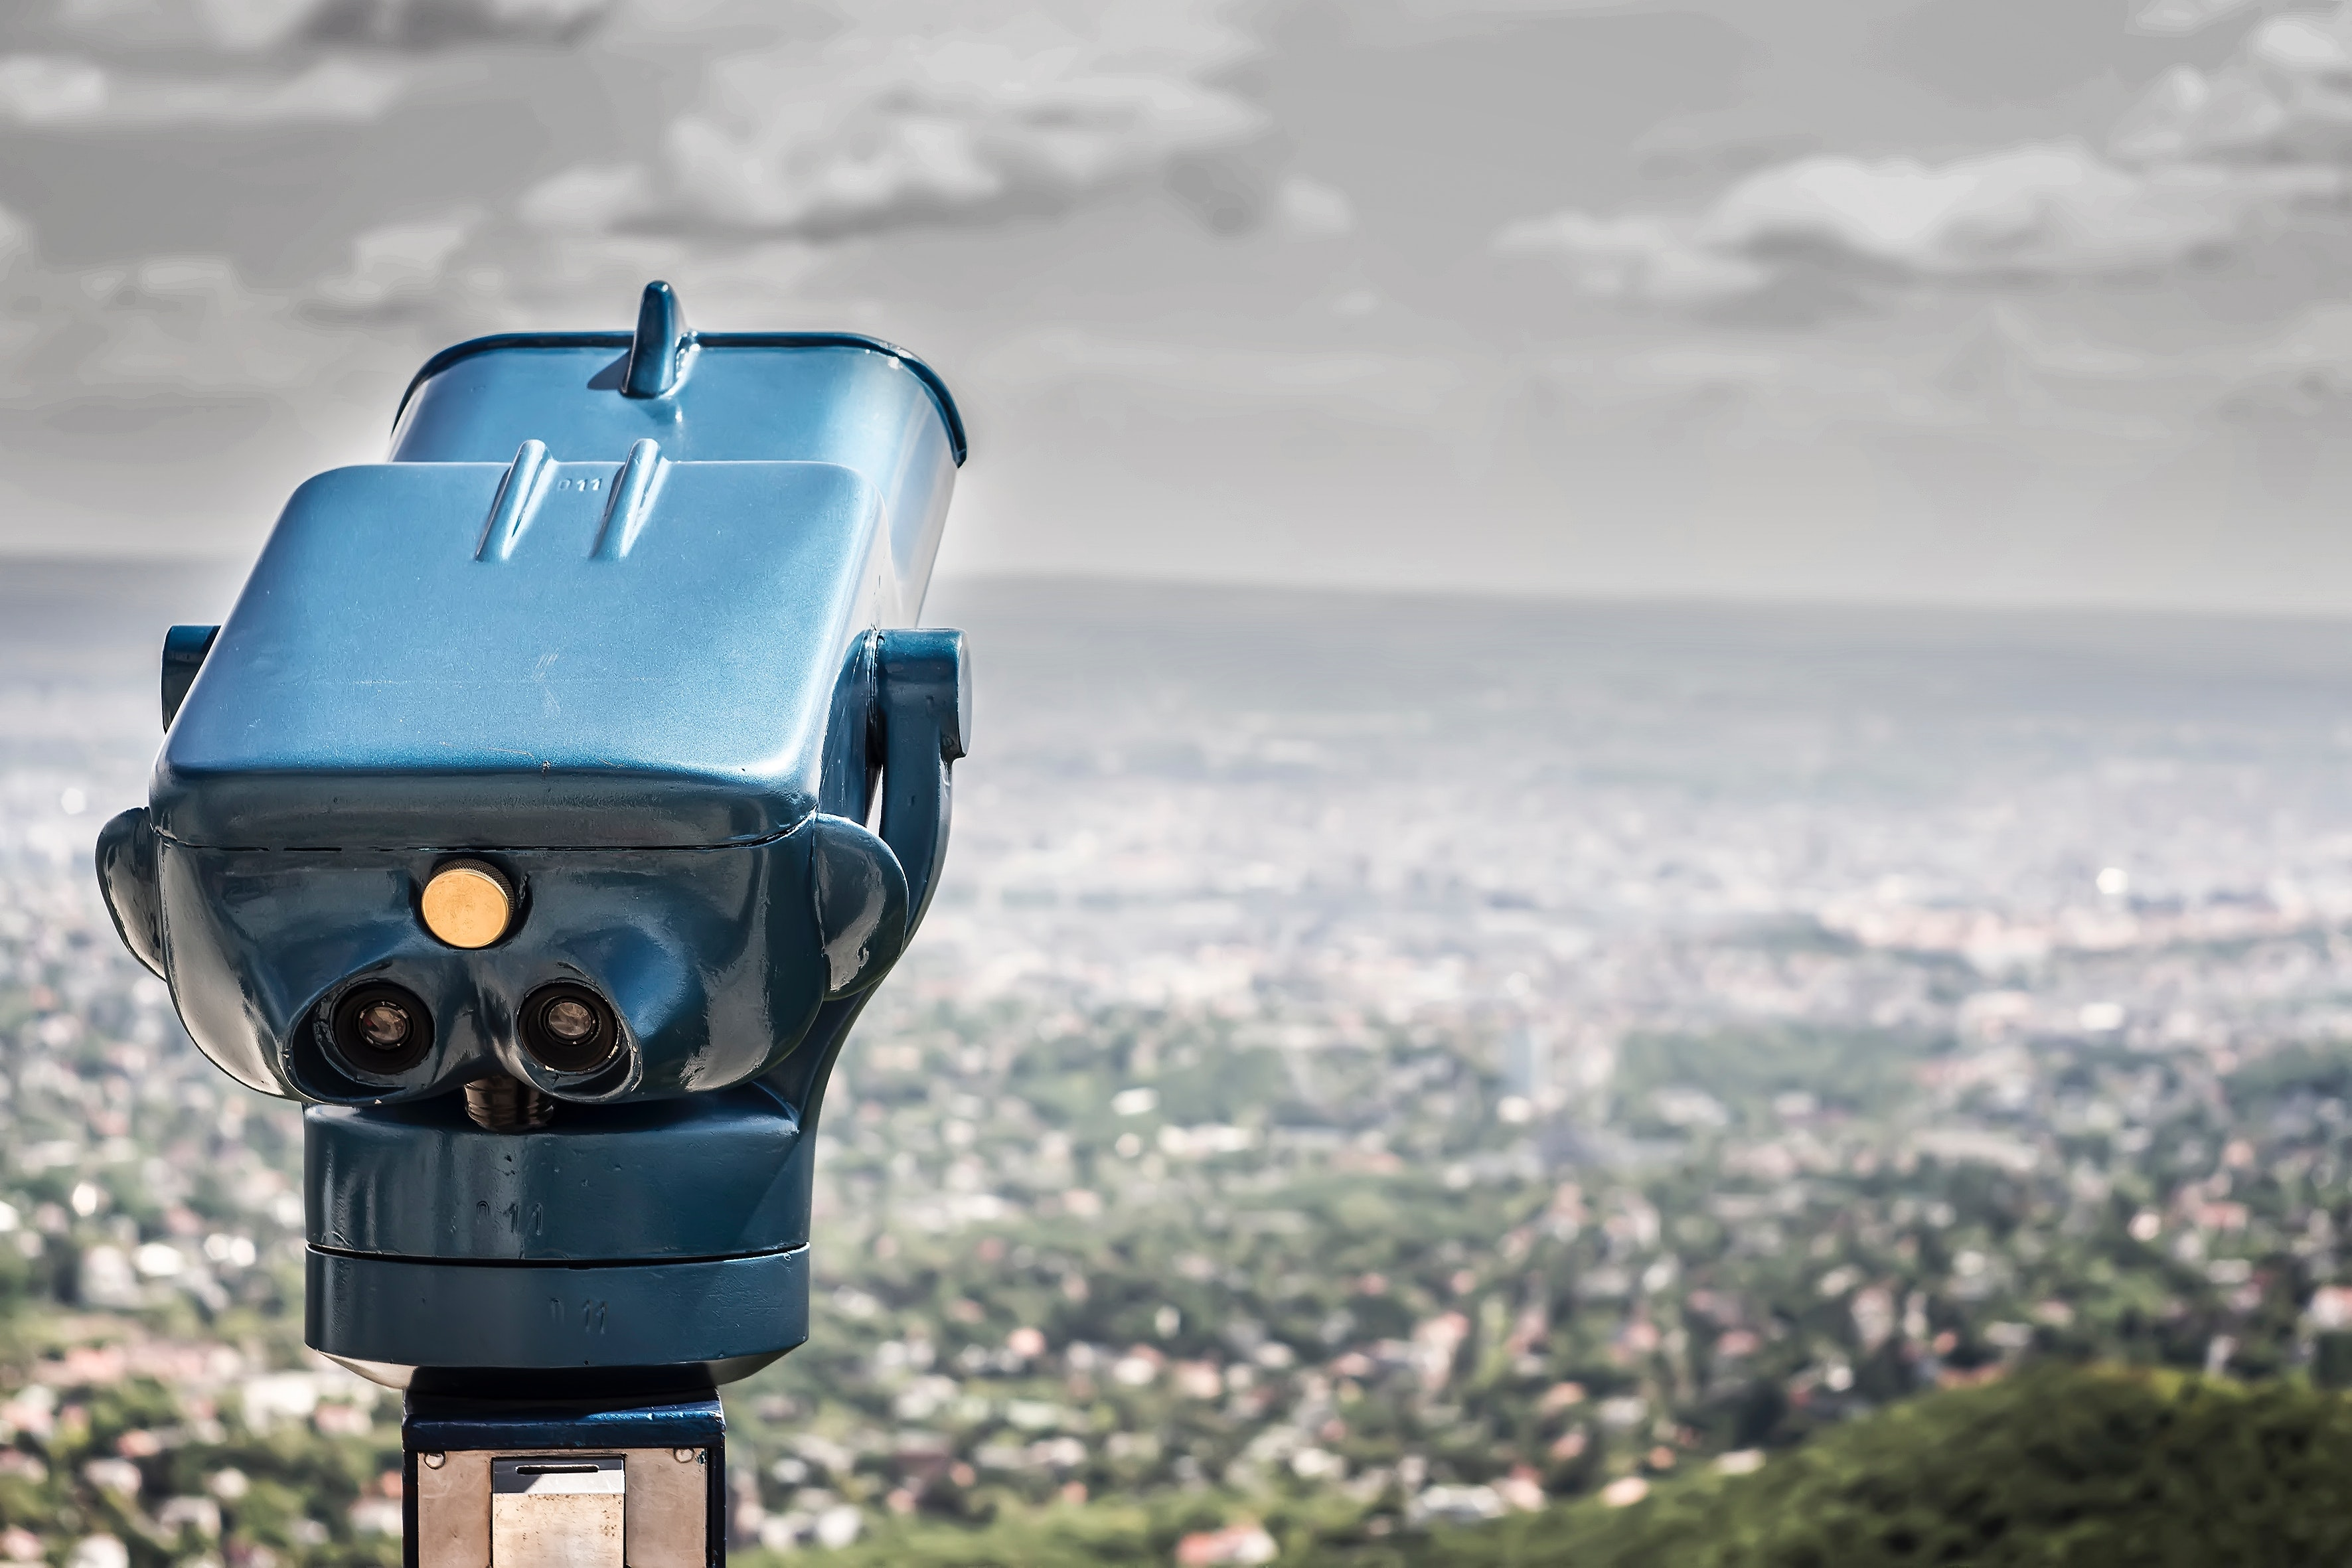 Blue coin operated binocular with city view during daytime photo